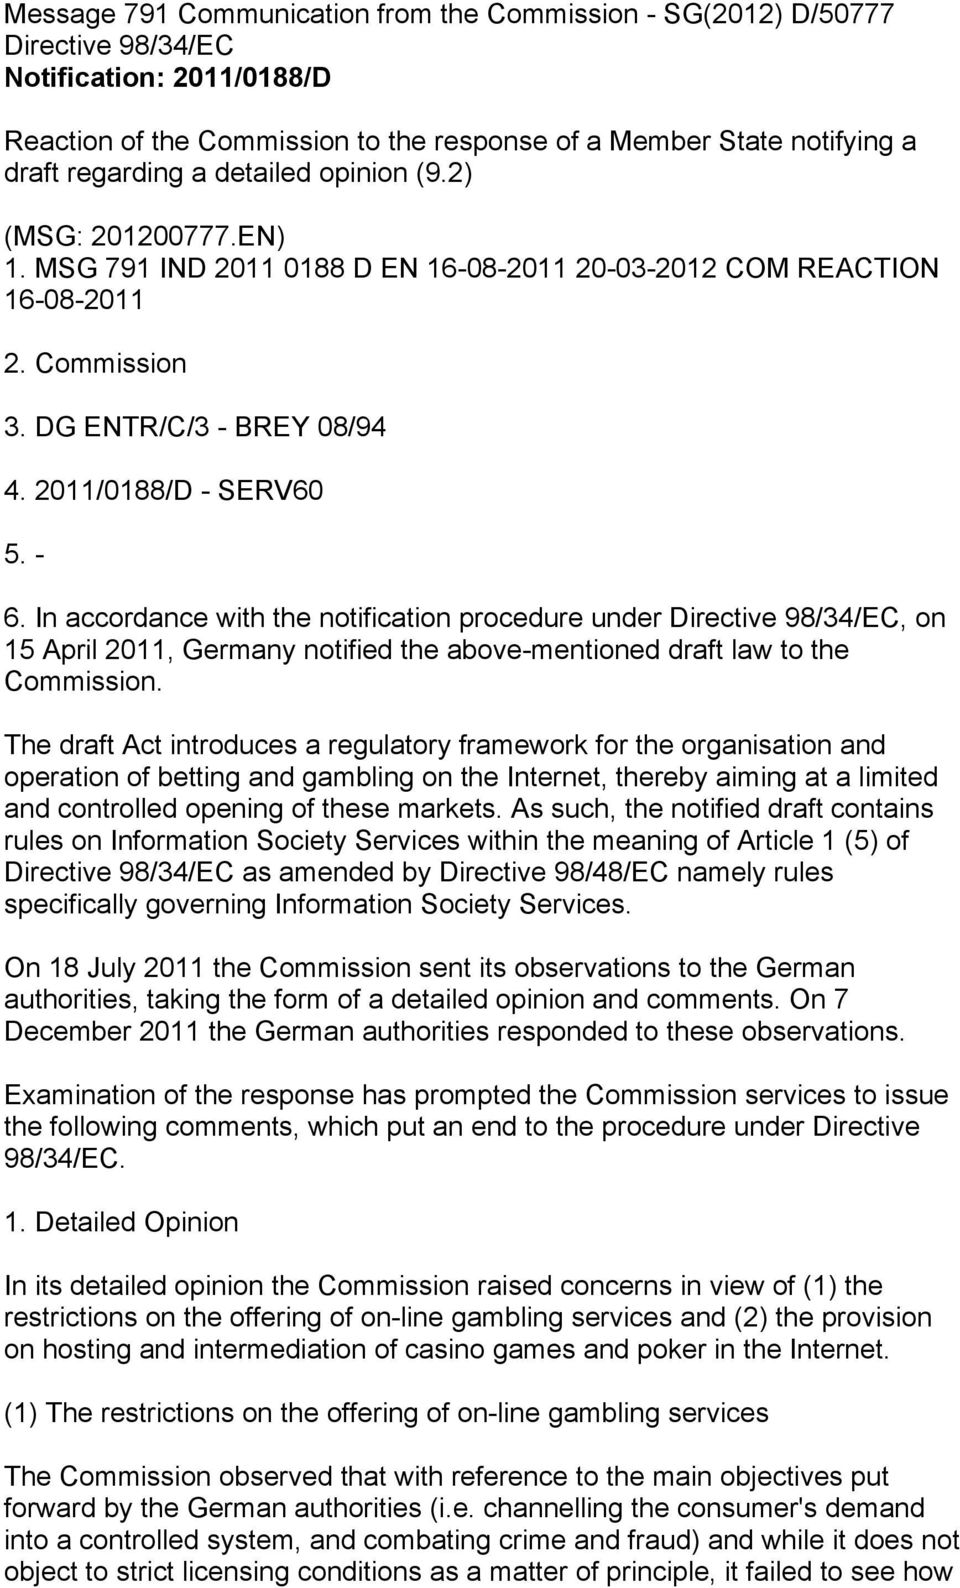 In accordance with the notification procedure under Directive 98/34/EC, on 15 April 2011, Germany notified the above-mentioned draft law to the Commission.